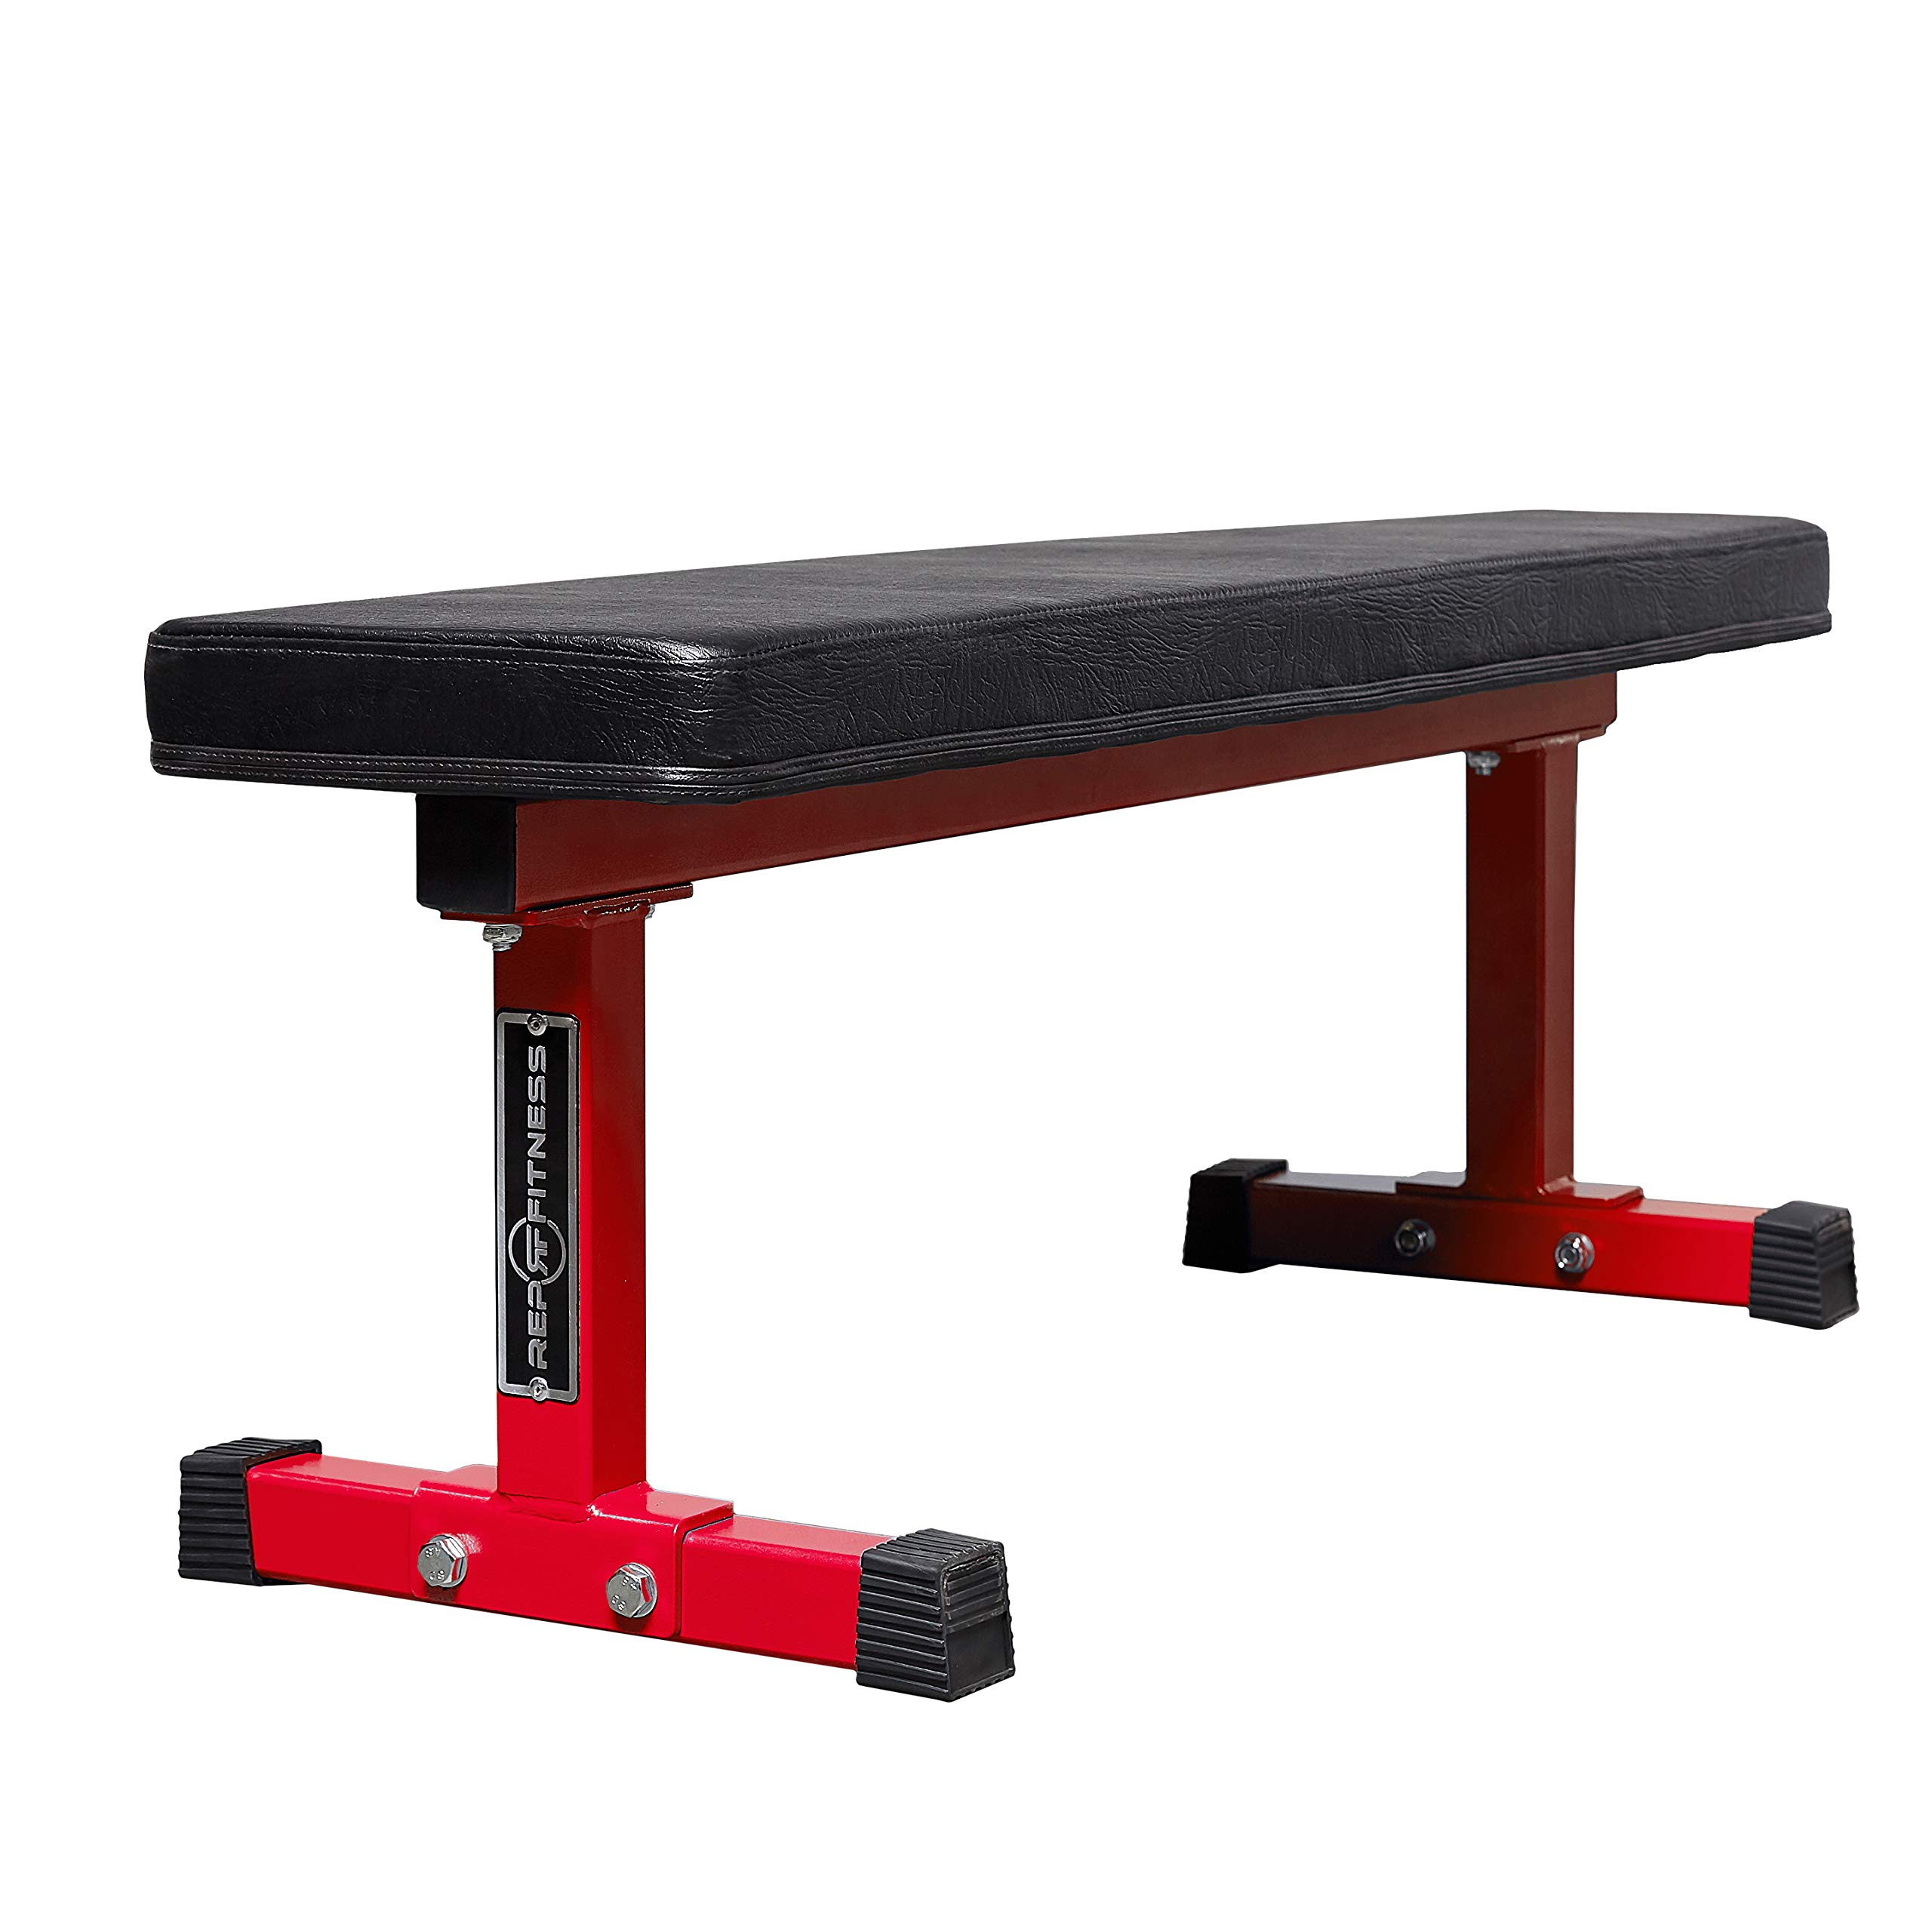 Rep Flat Bench – FB-3000 - Red